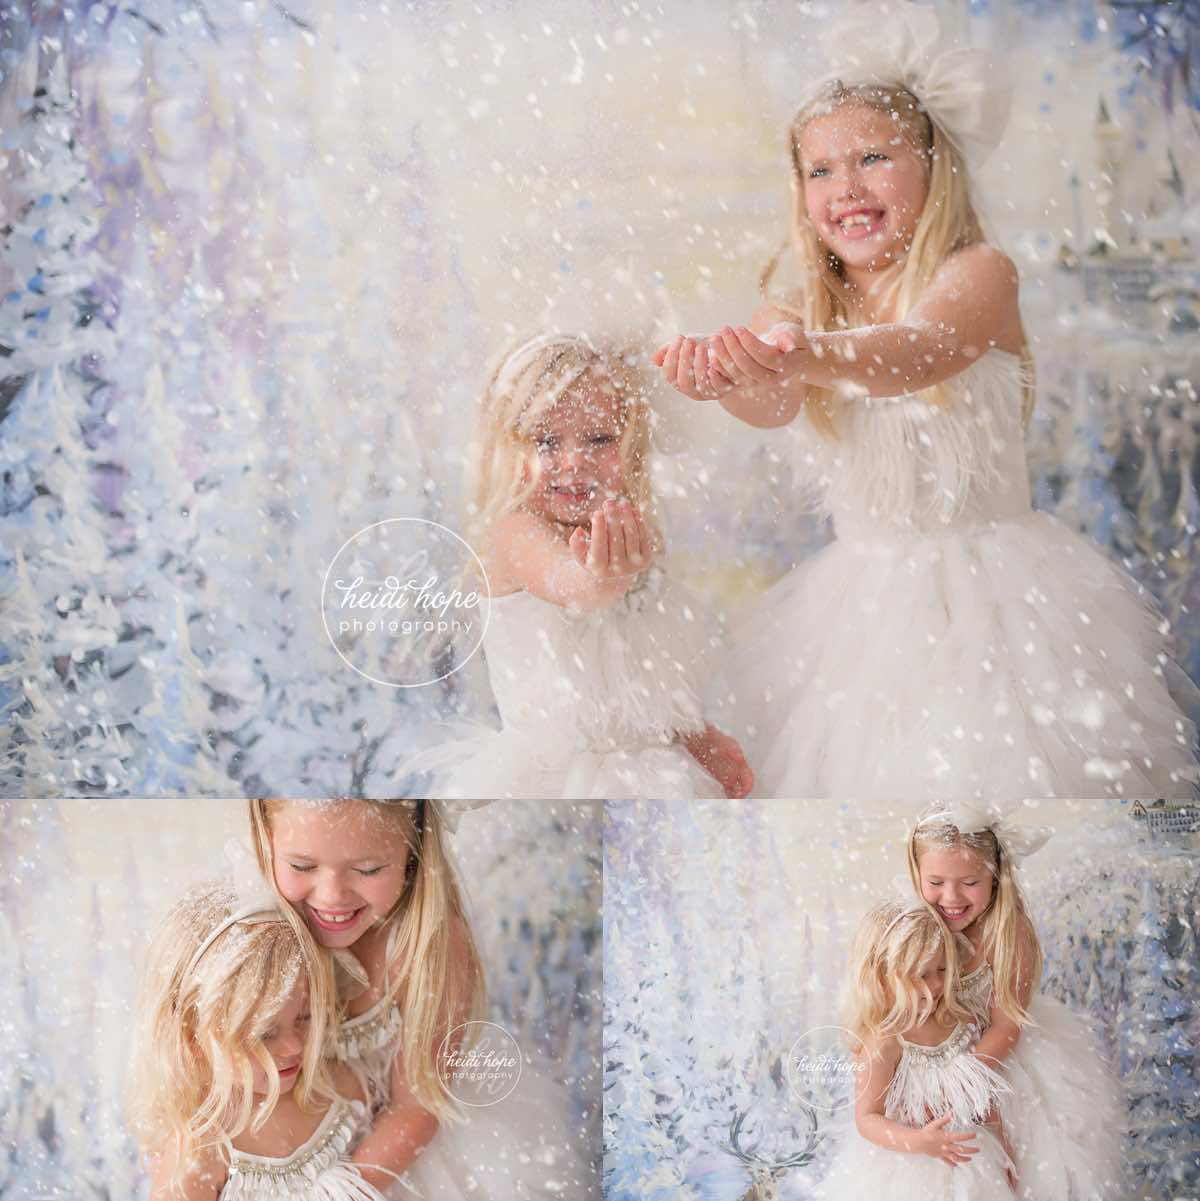 heidi hope backdrop frozen winter wonderland mini session with tutudumonde and snow 3